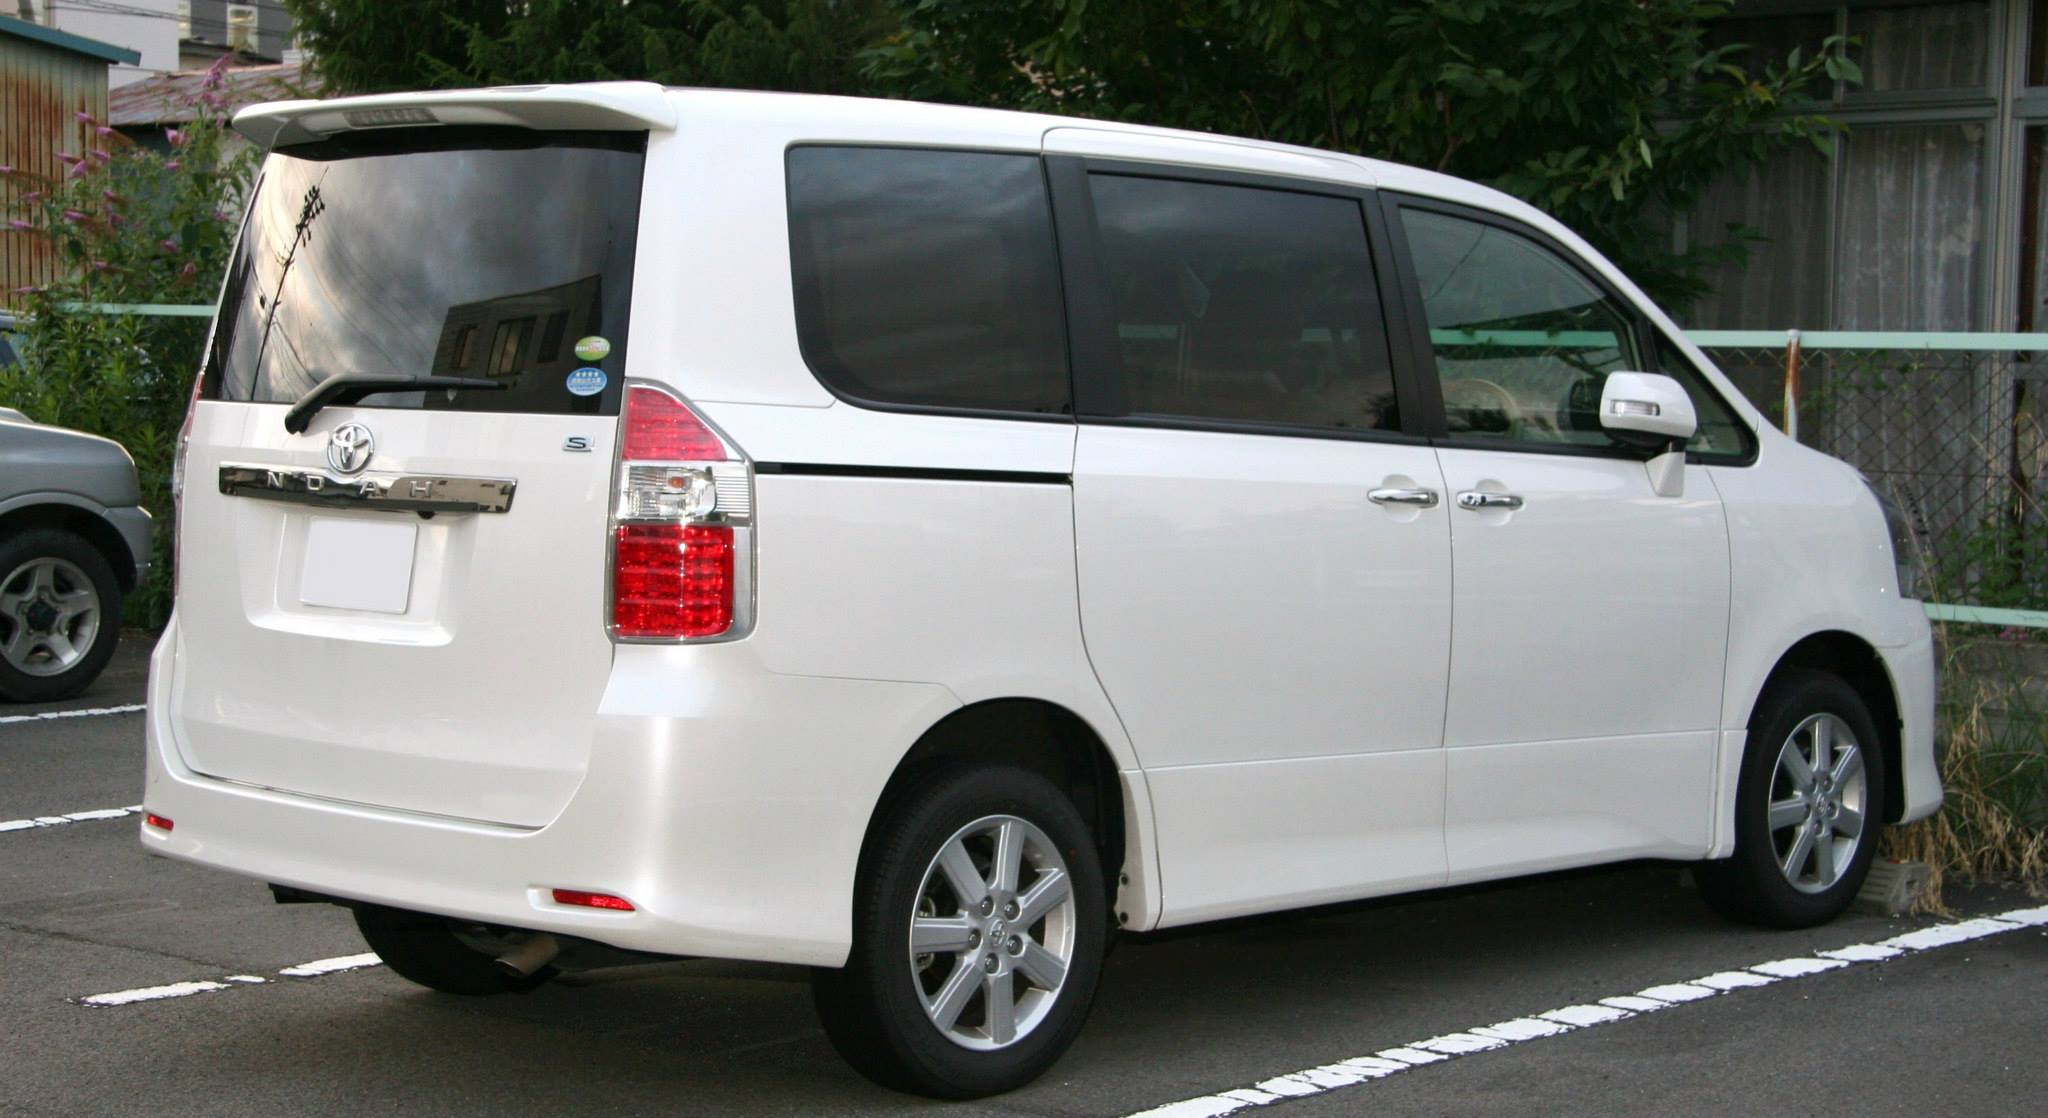 Caribuni Car rental service